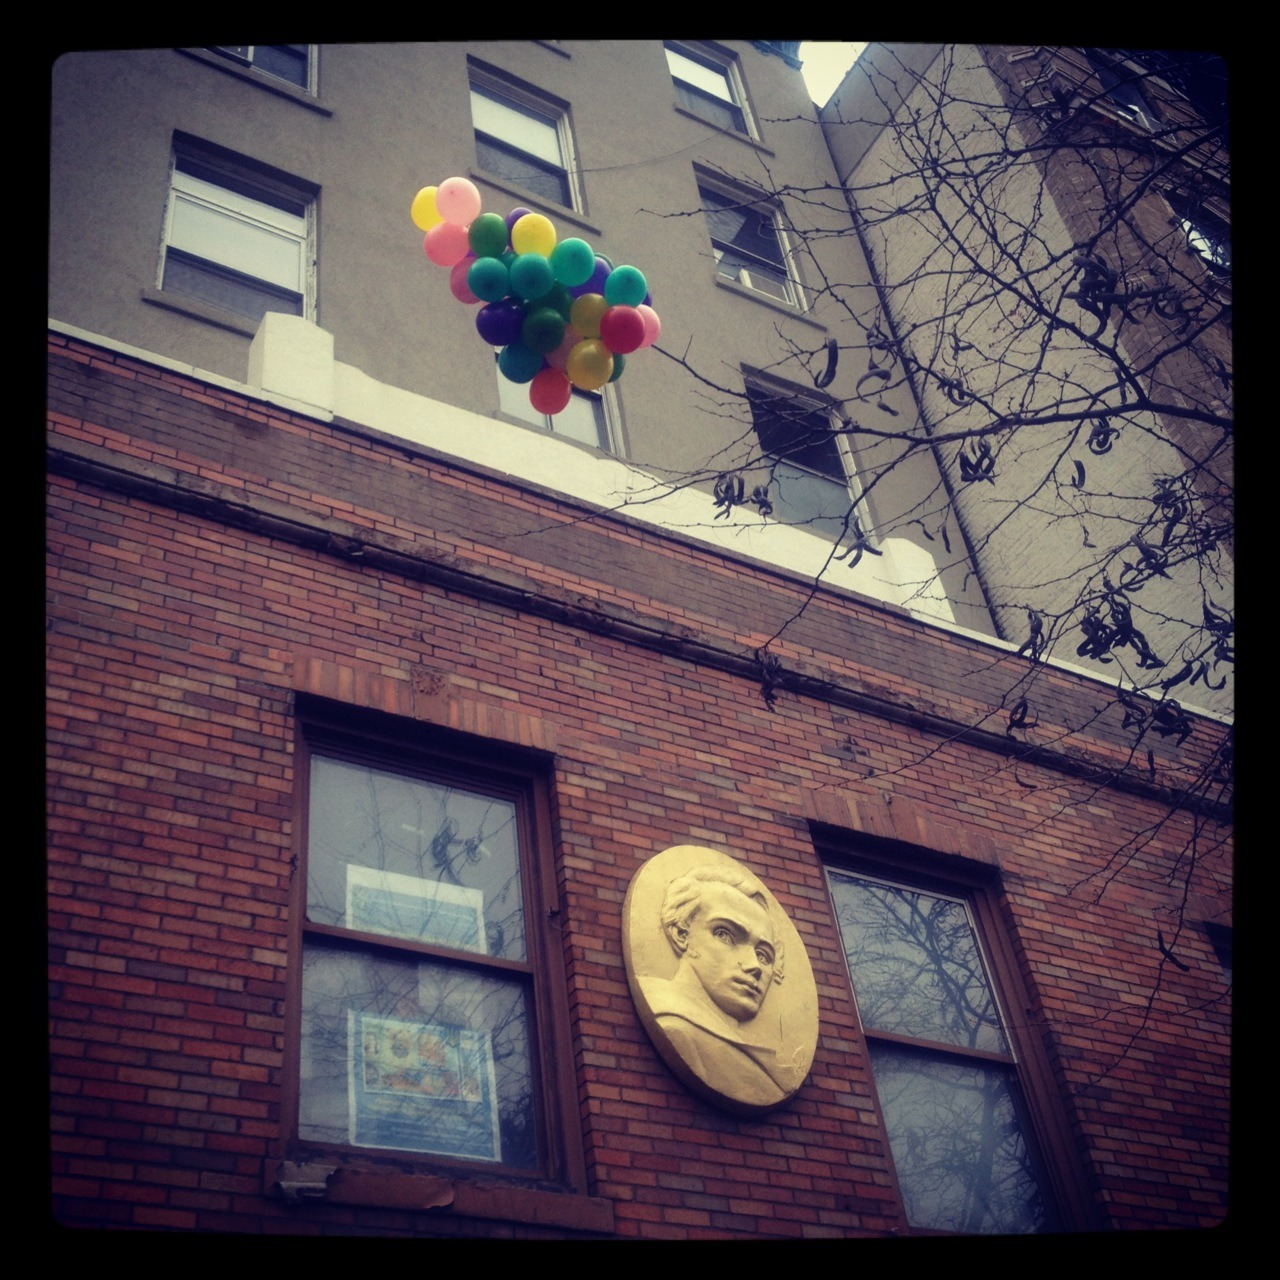 Bright Balloons Stuck / Ukrainian Youth Association / 2nd Ave. East Village / 12.06.11 / 11:21AM /